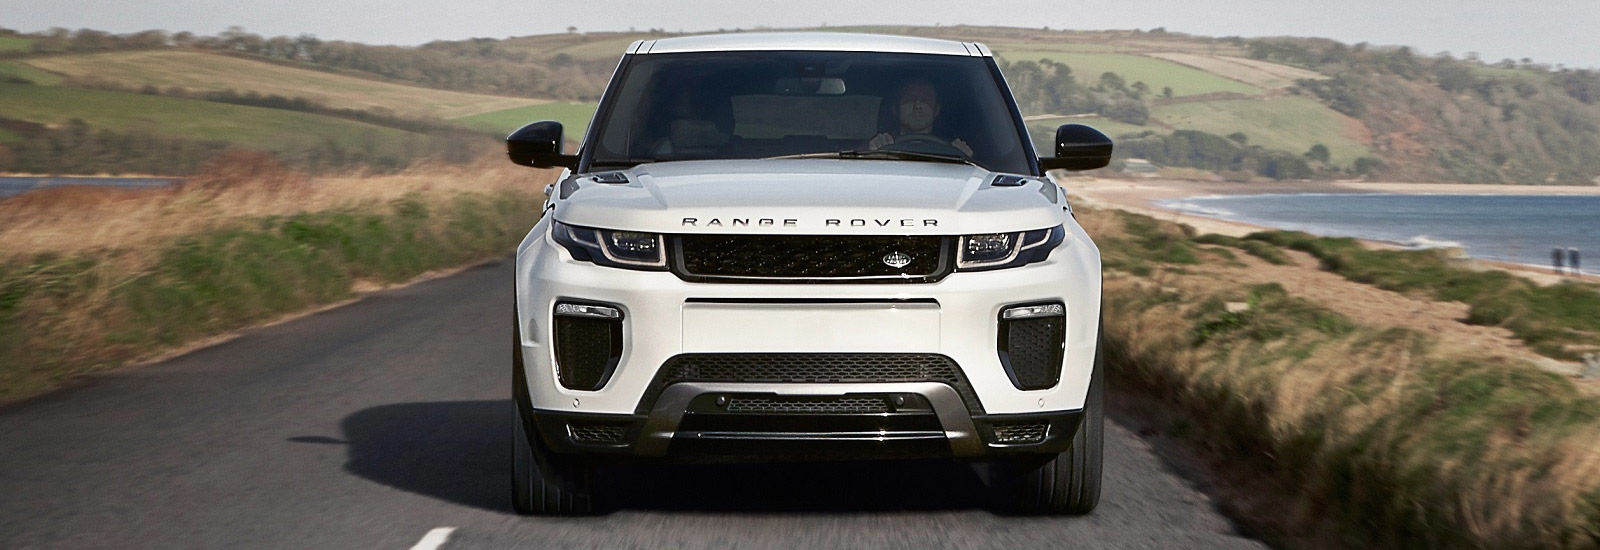 range rover evoque sizes and dimensions guide carwow. Black Bedroom Furniture Sets. Home Design Ideas